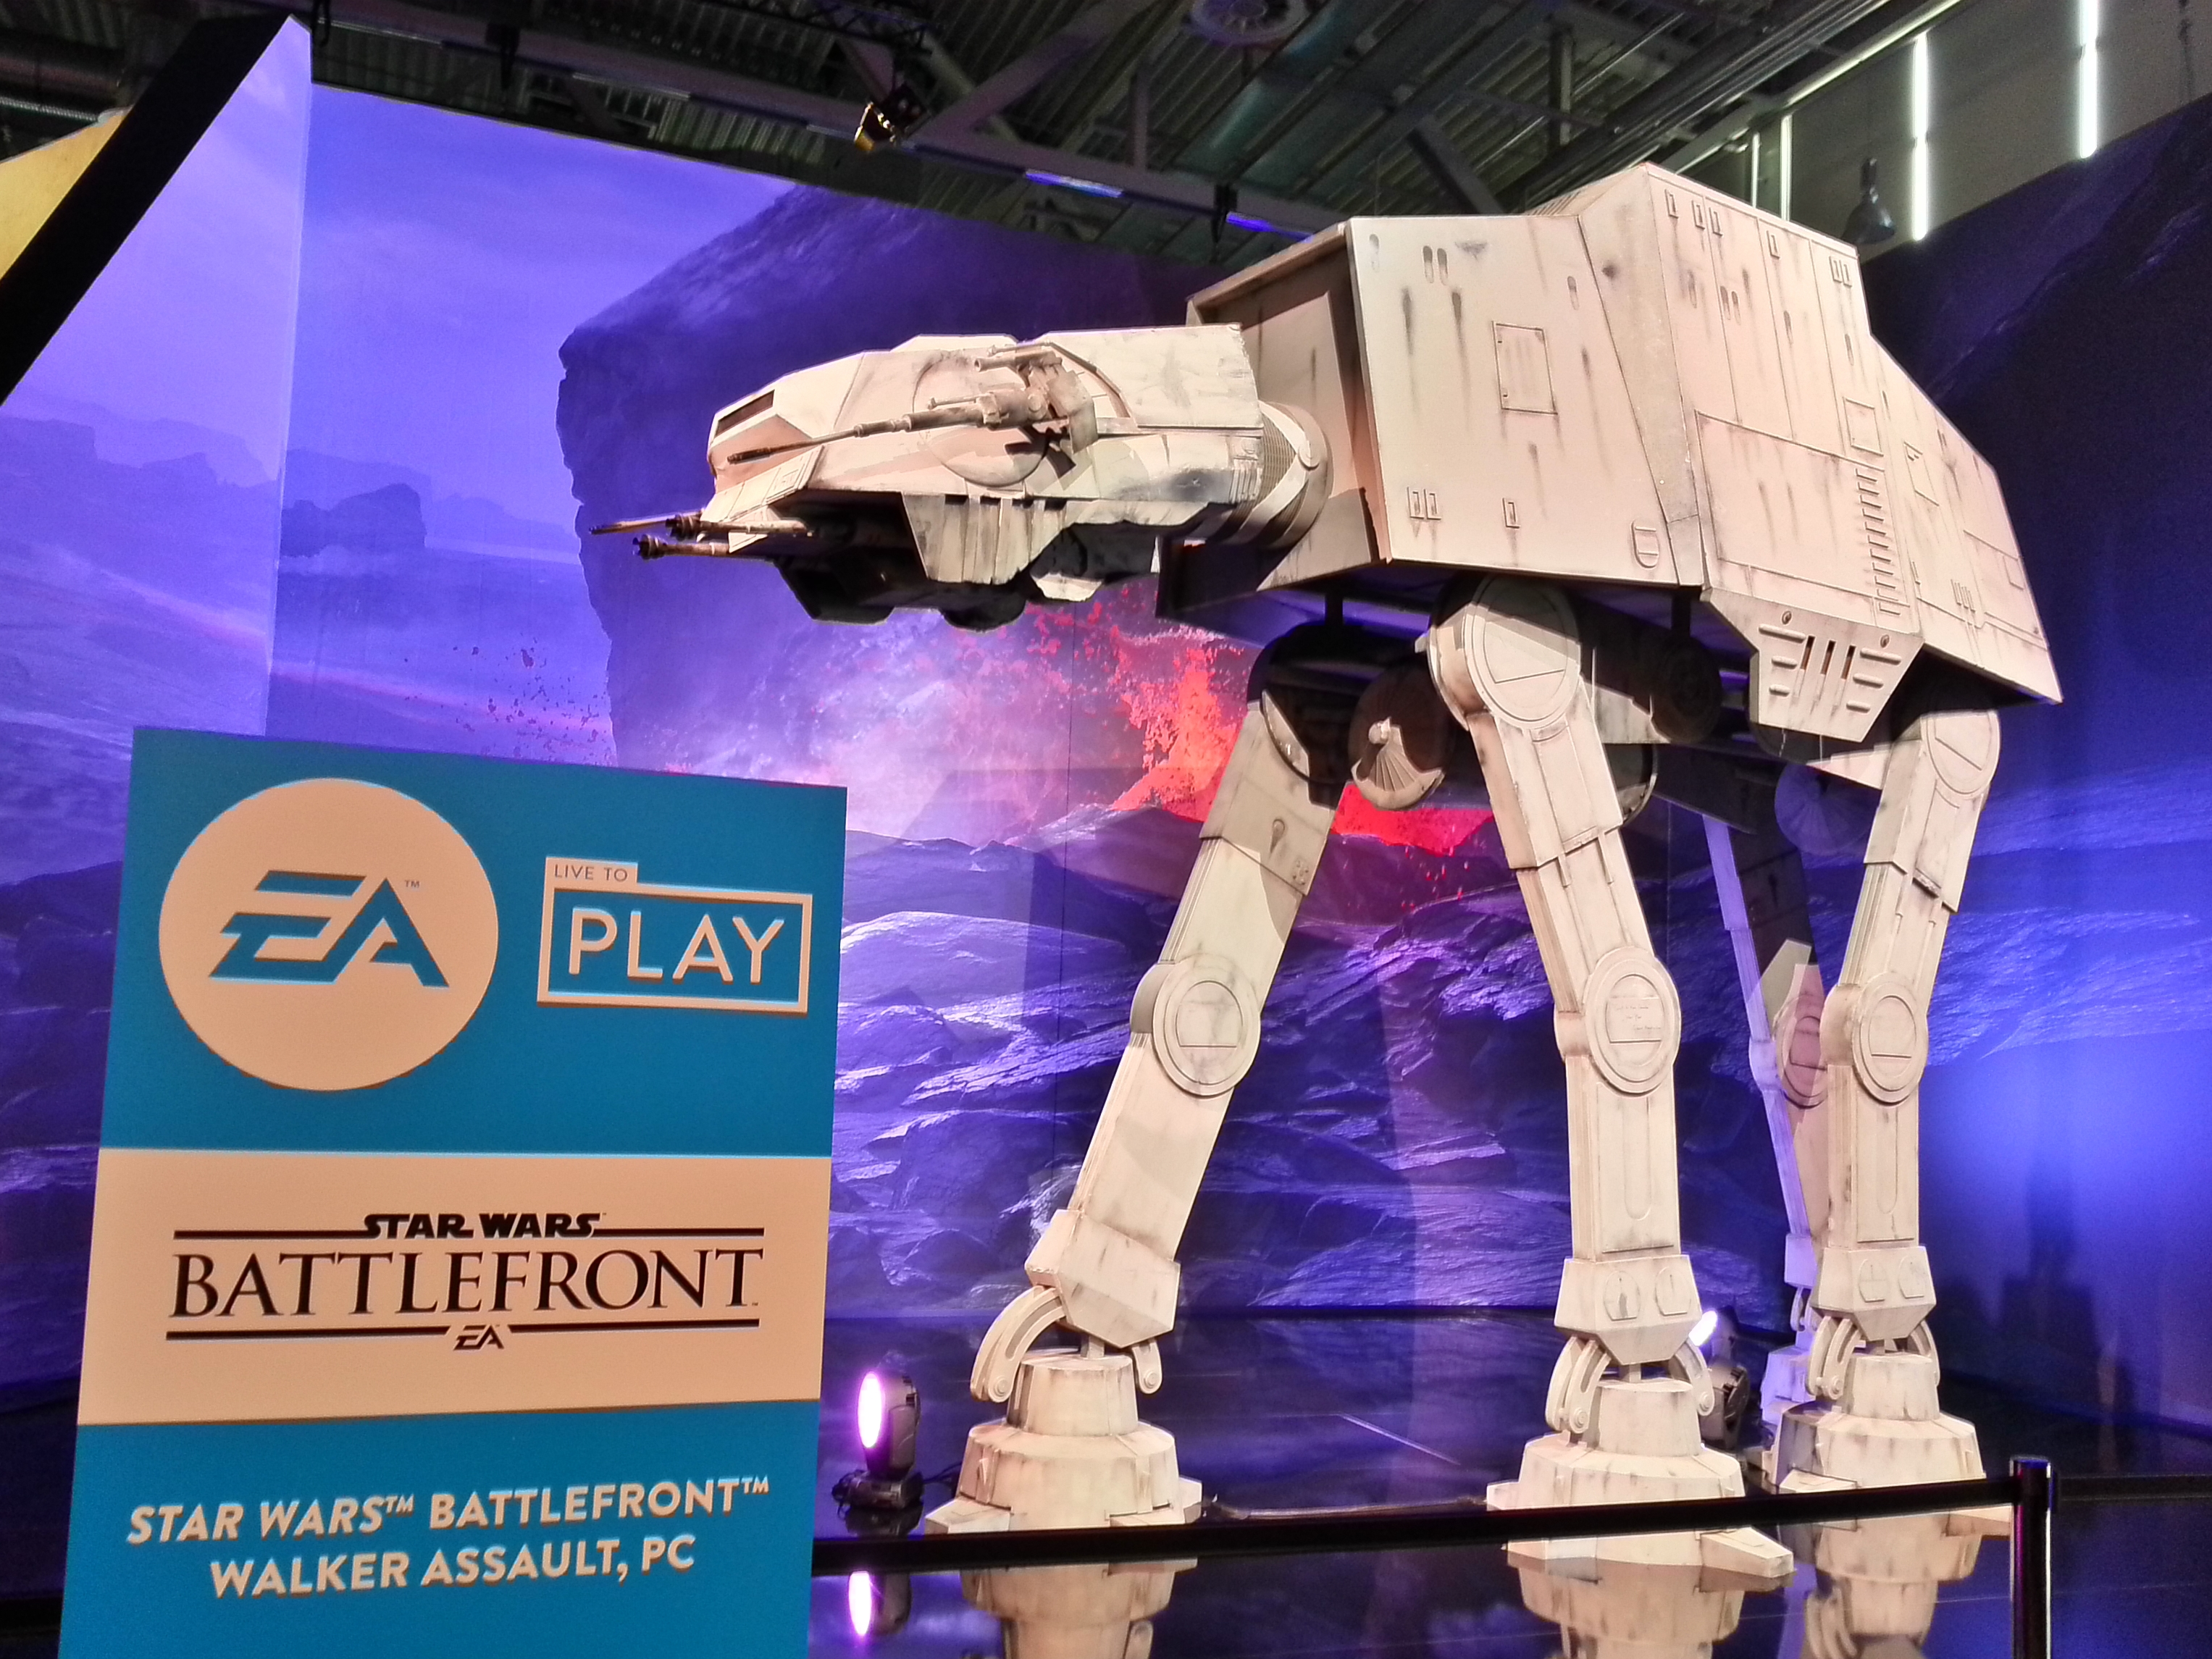 Electronic Arts gamescom 2015